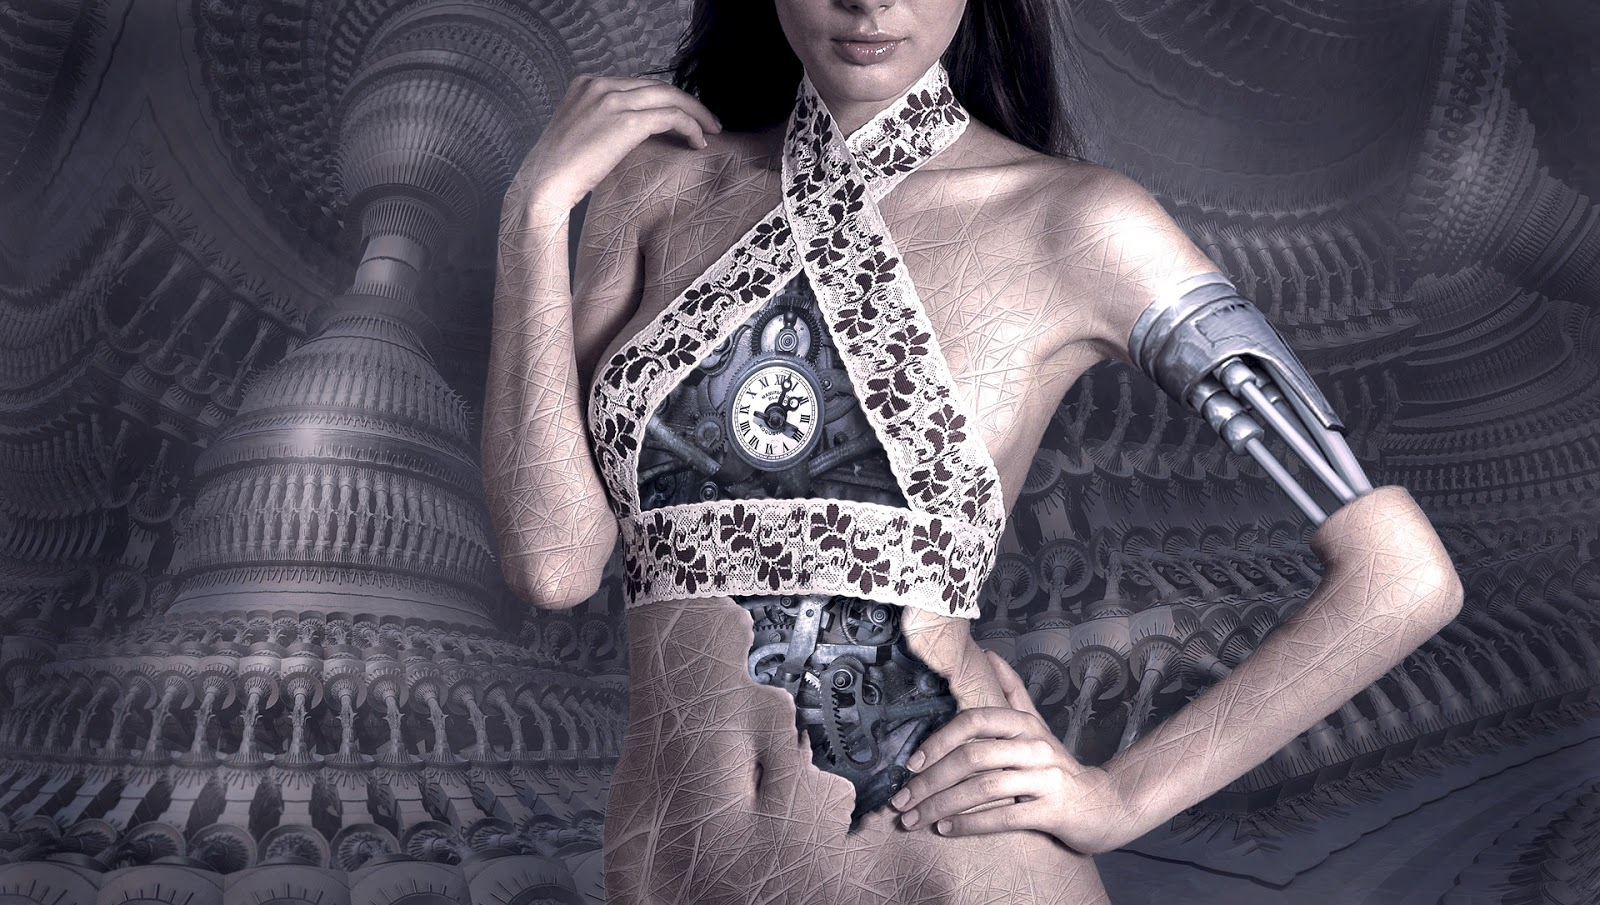 Robotic woman. This is also a link to blog